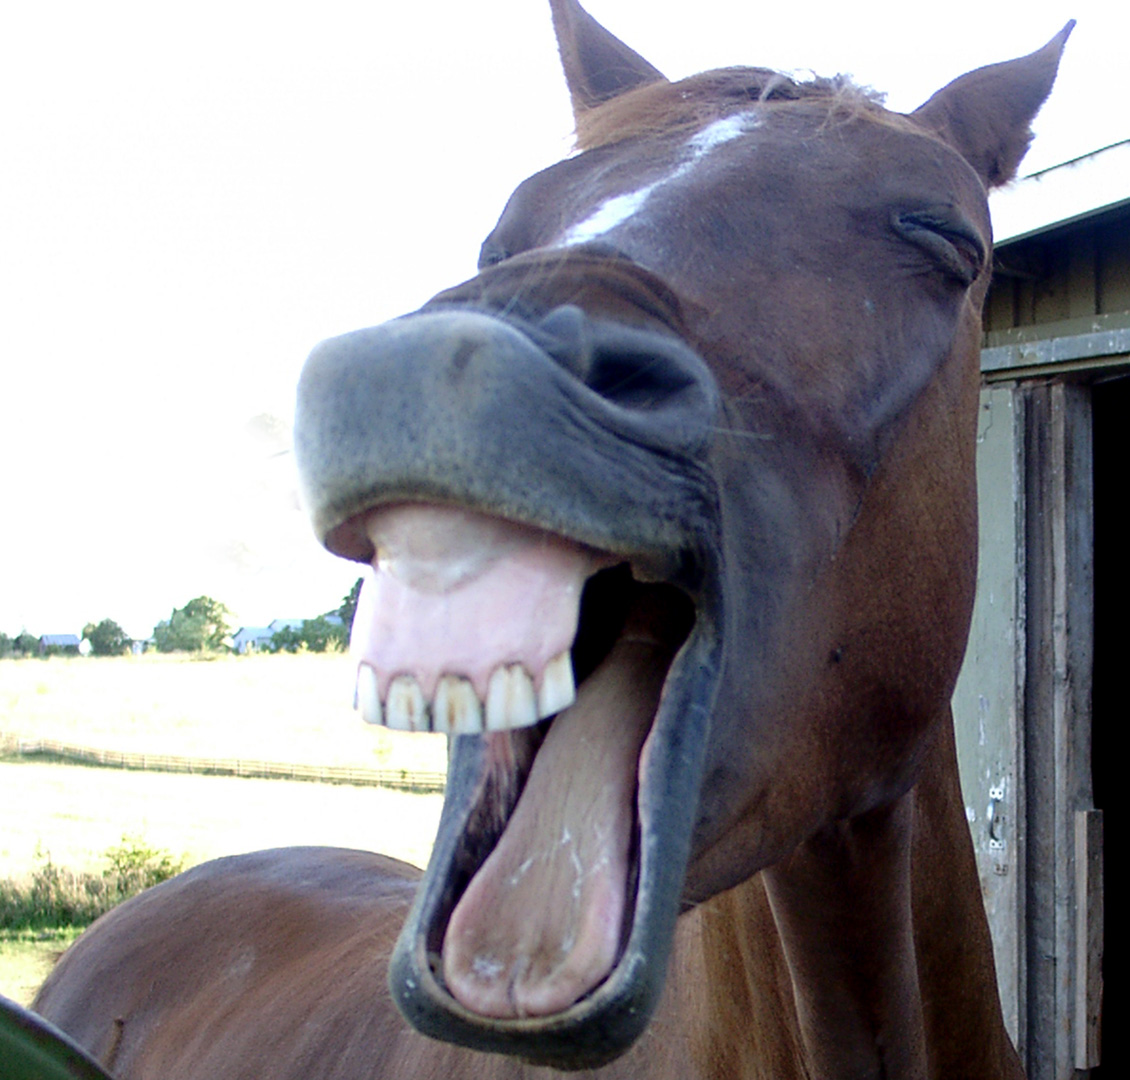 Toothy horse grins at camera, mouth wide open, lips exposing upper teeth.